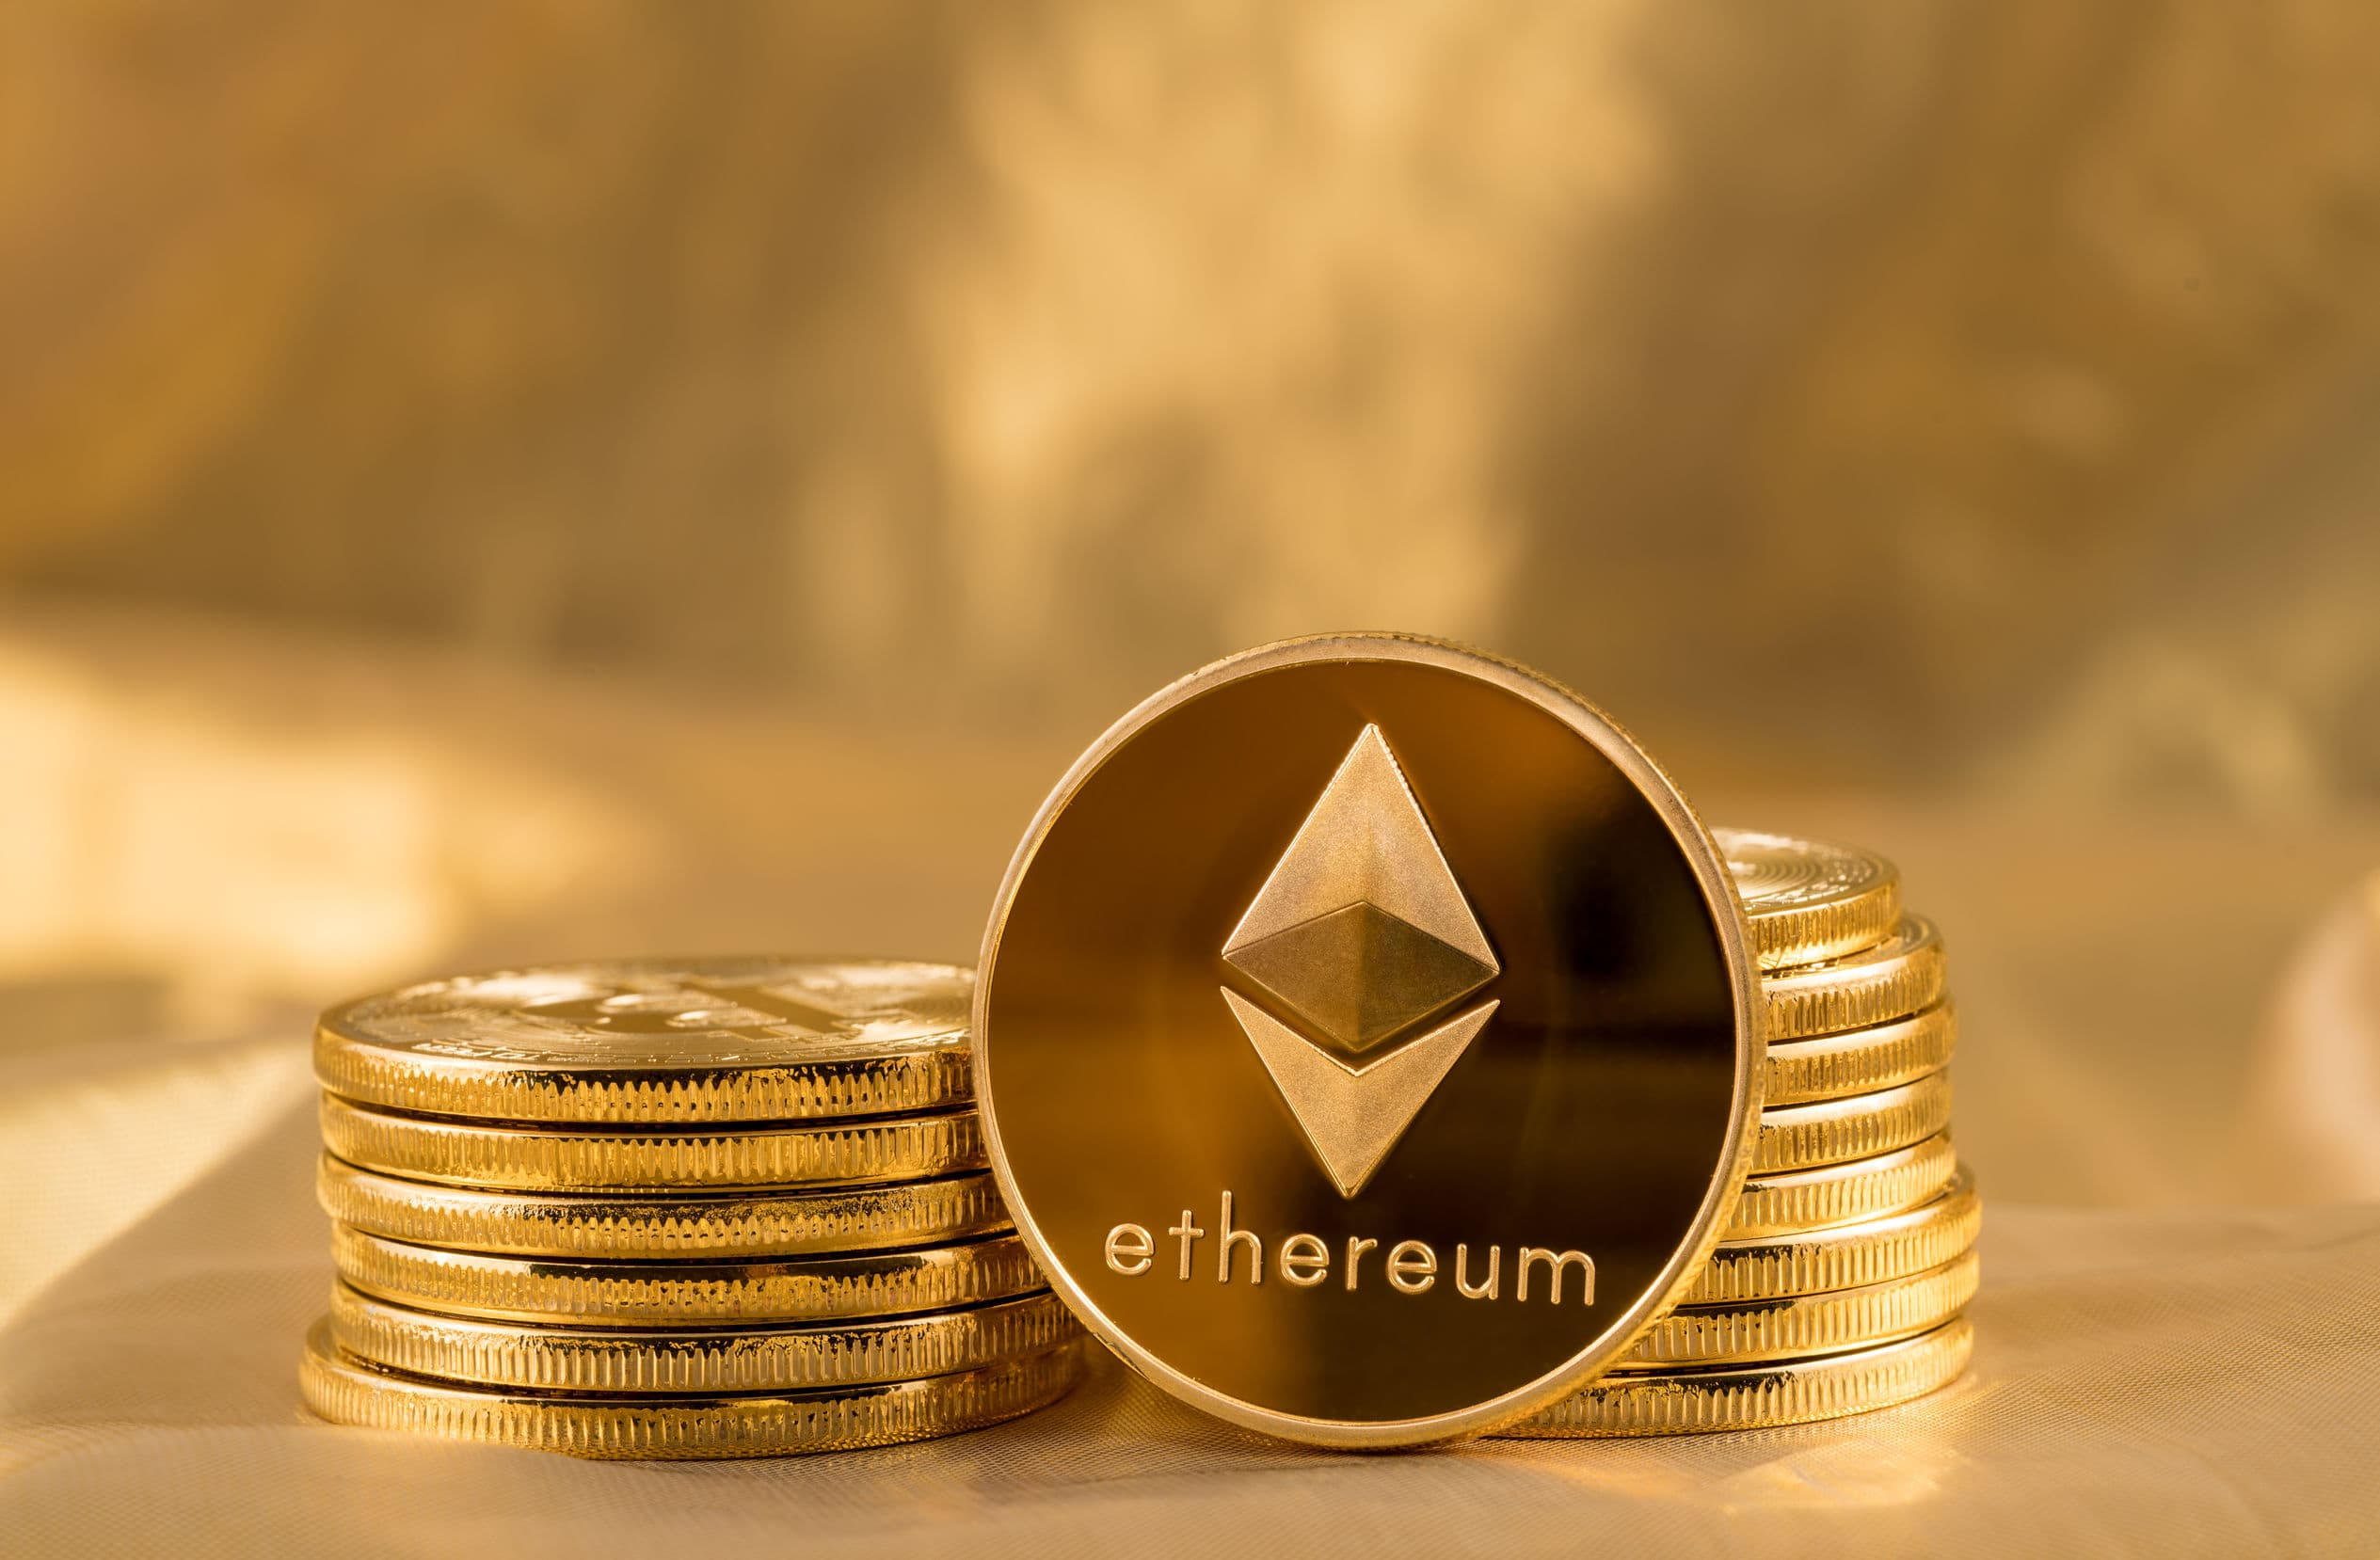 Ethereum (ETH) price prediction for March